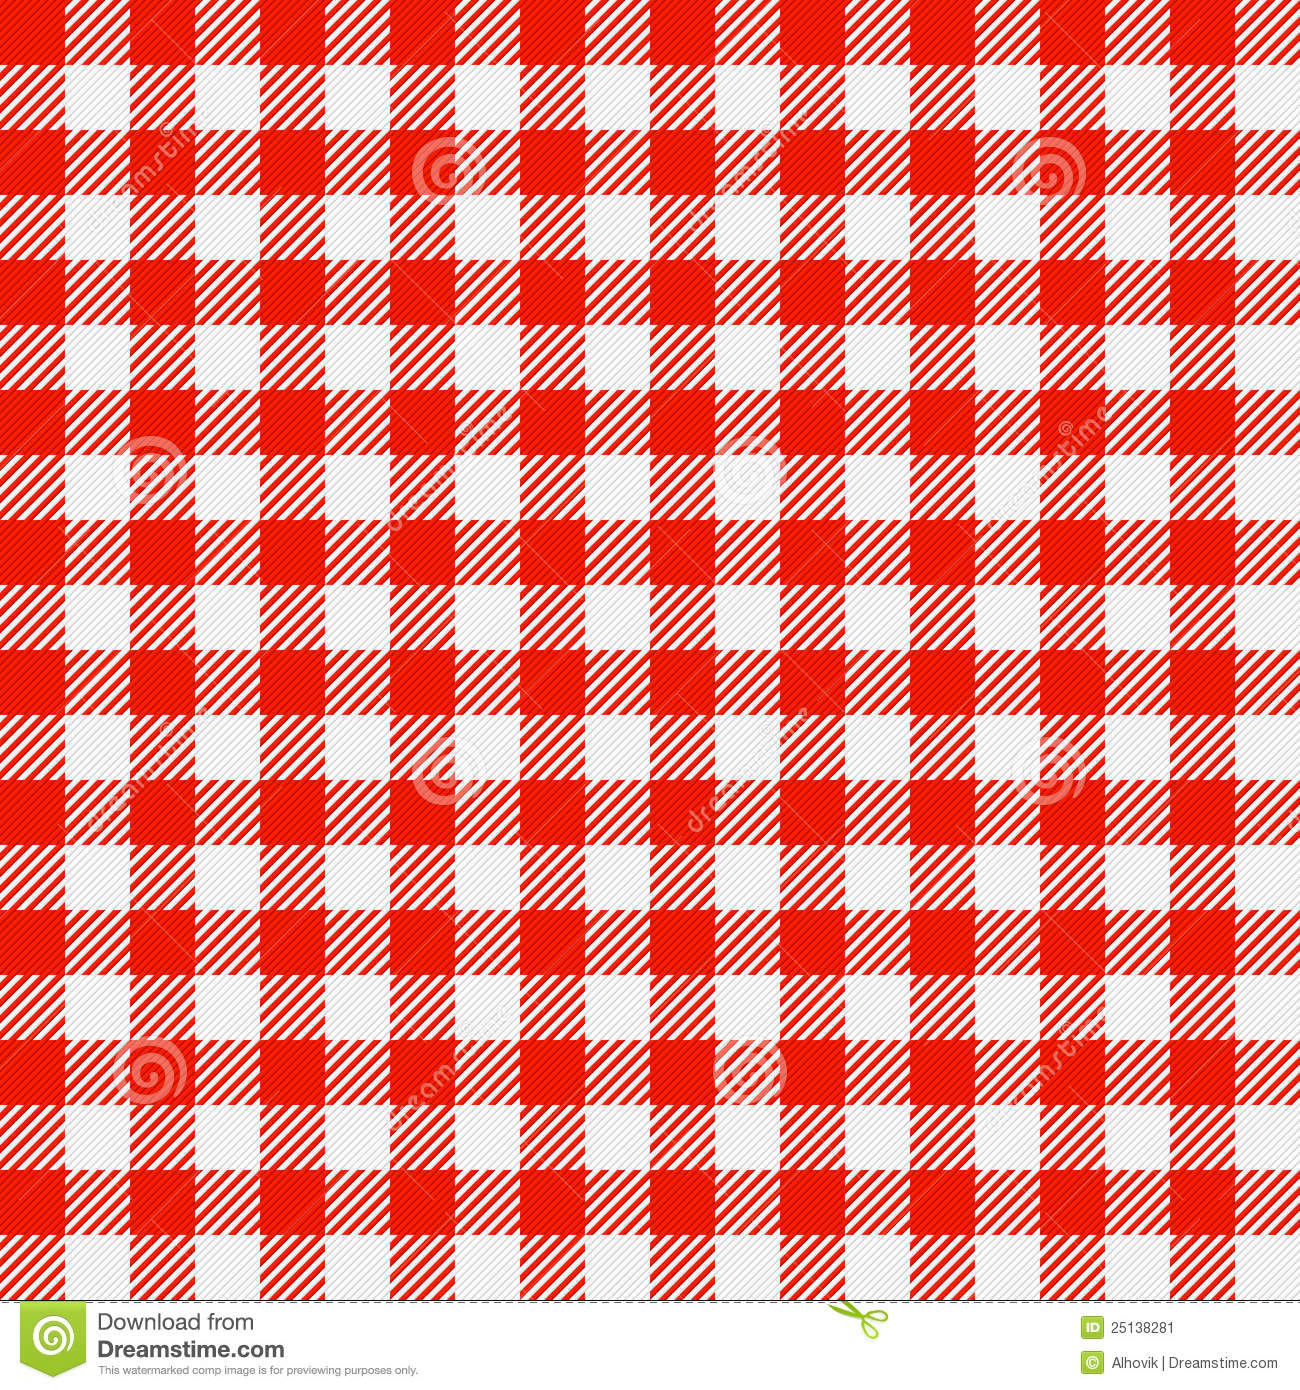 More similar stock images of ` Checkered tablecloth `